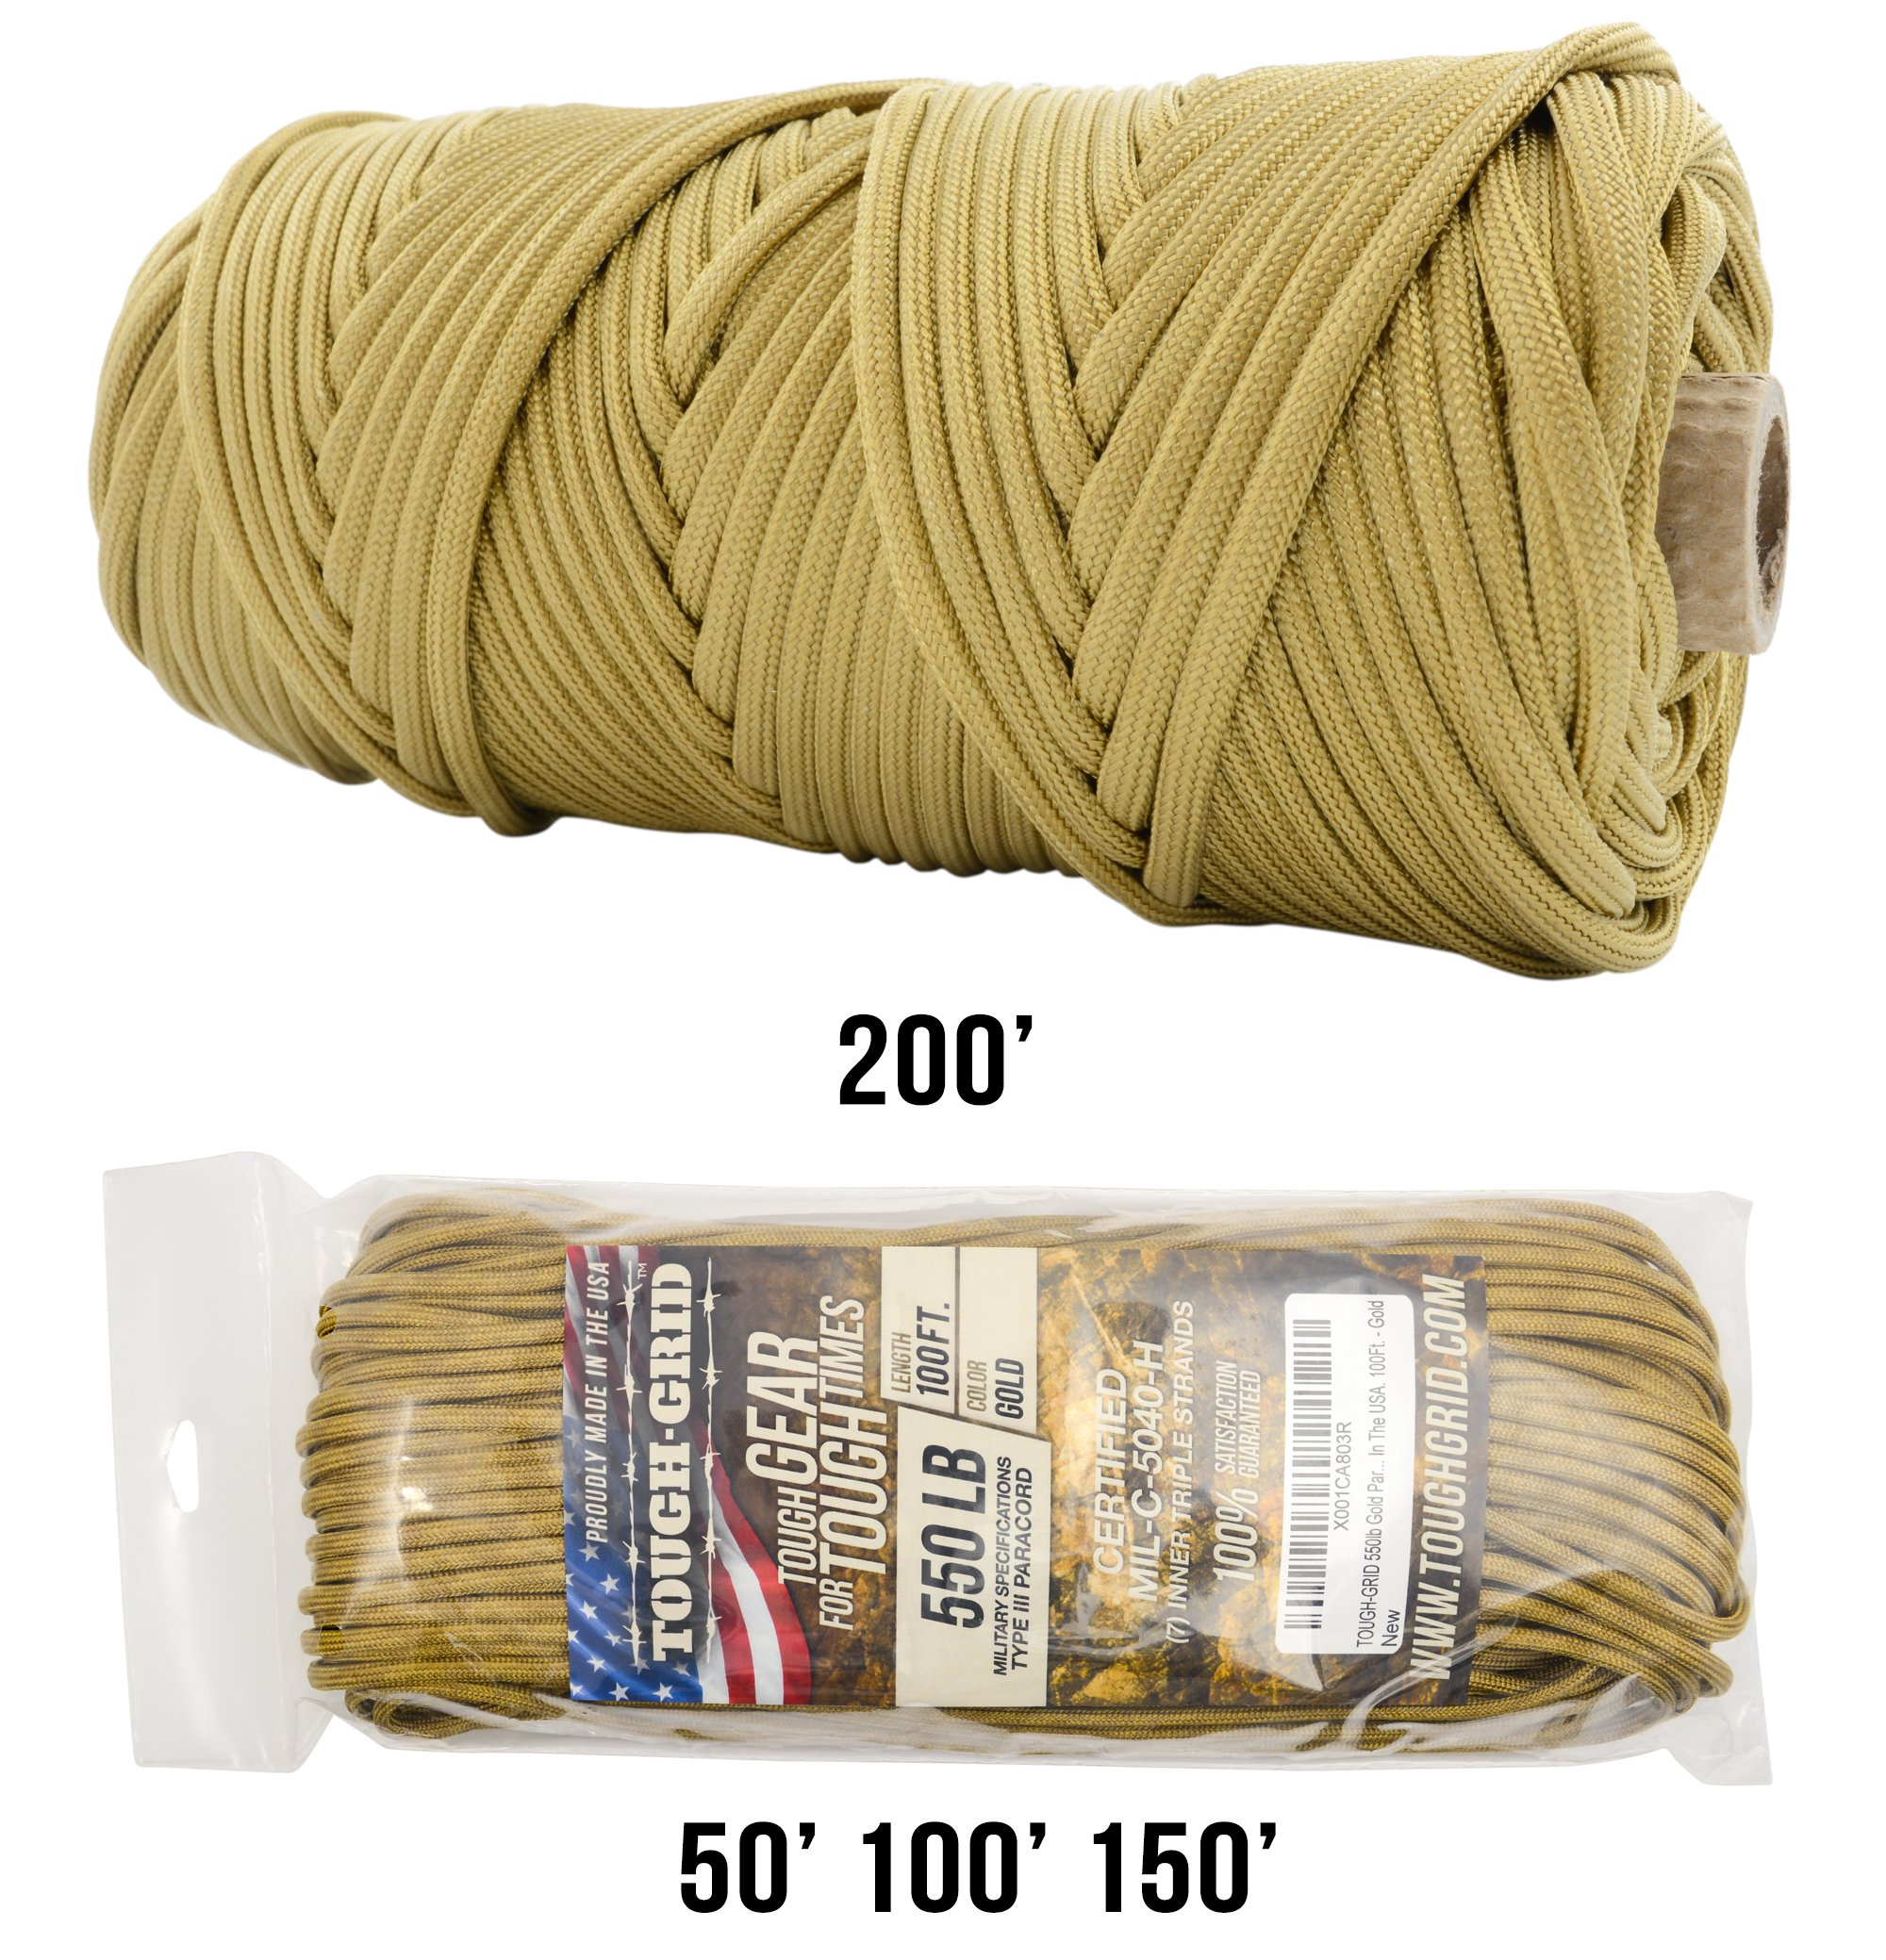 TOUGH-GRID 550lb Gold Paracord/Parachute Cord - 100% Nylon Genuine Mil-Spec Type III Paracord Used by The US Military - Great for Bracelets and Lanyards - Made in The USA. 50Ft. - Gold